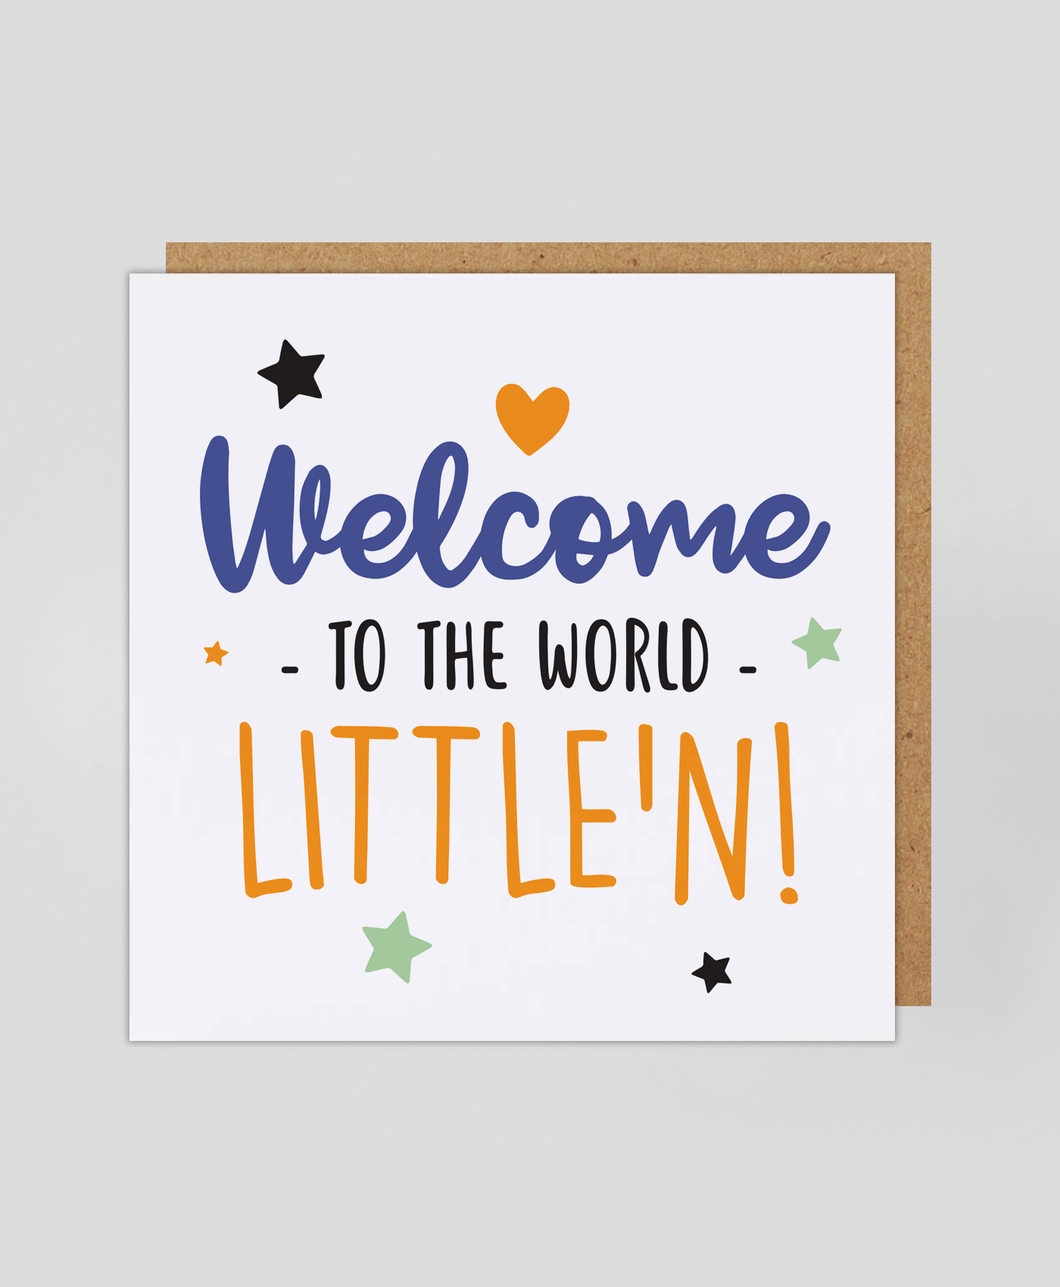 Welcome Little'n - Greetings Card